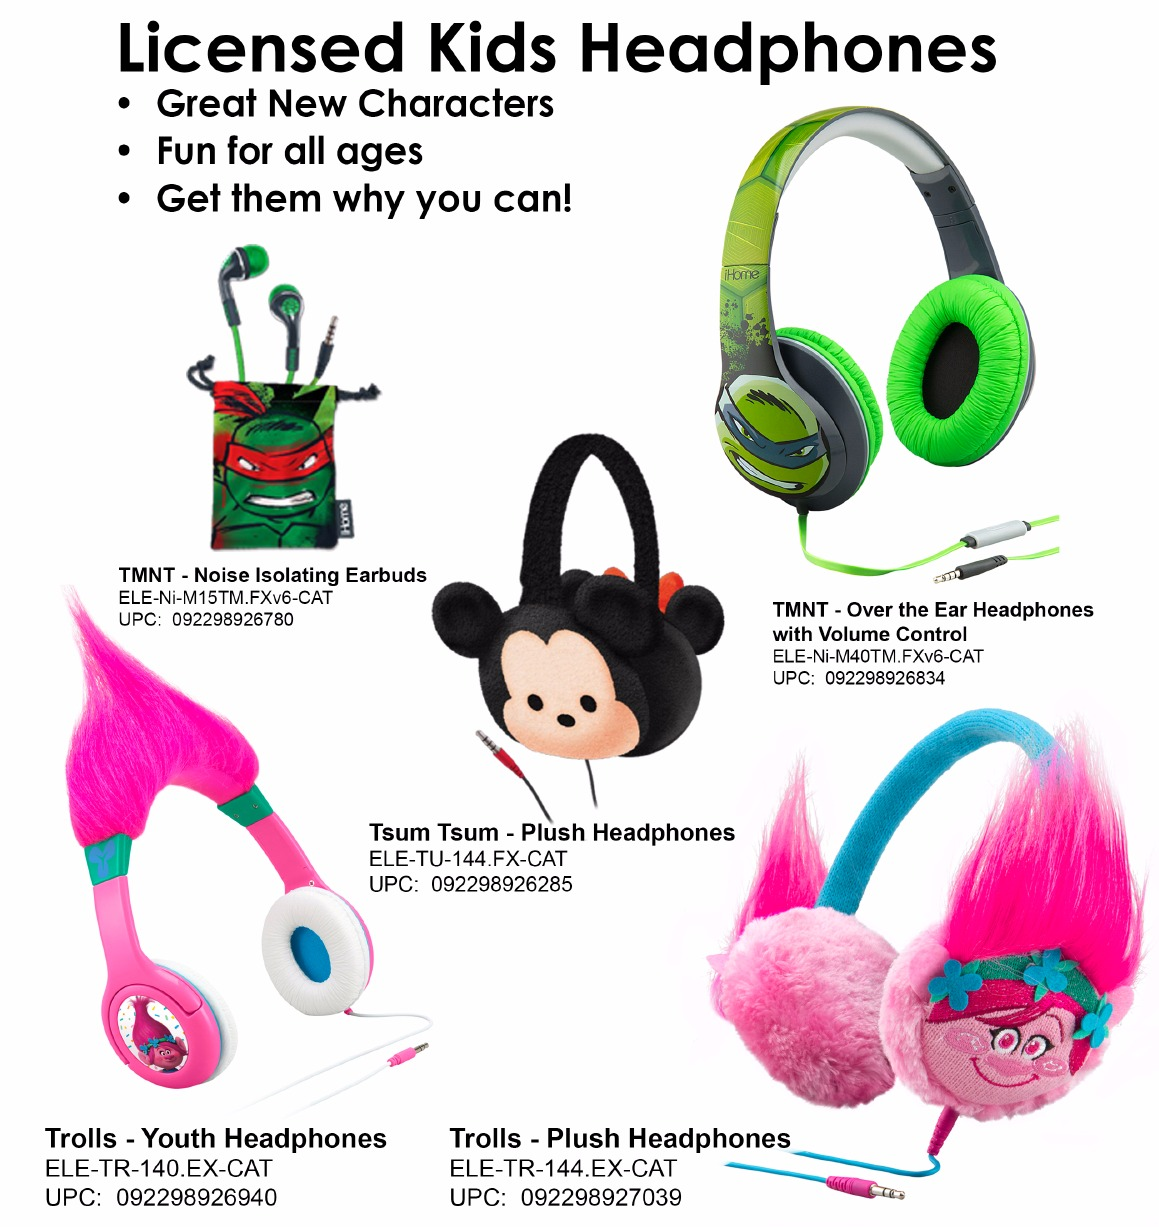 SNI Today - Licensed Kids Headphones_edited